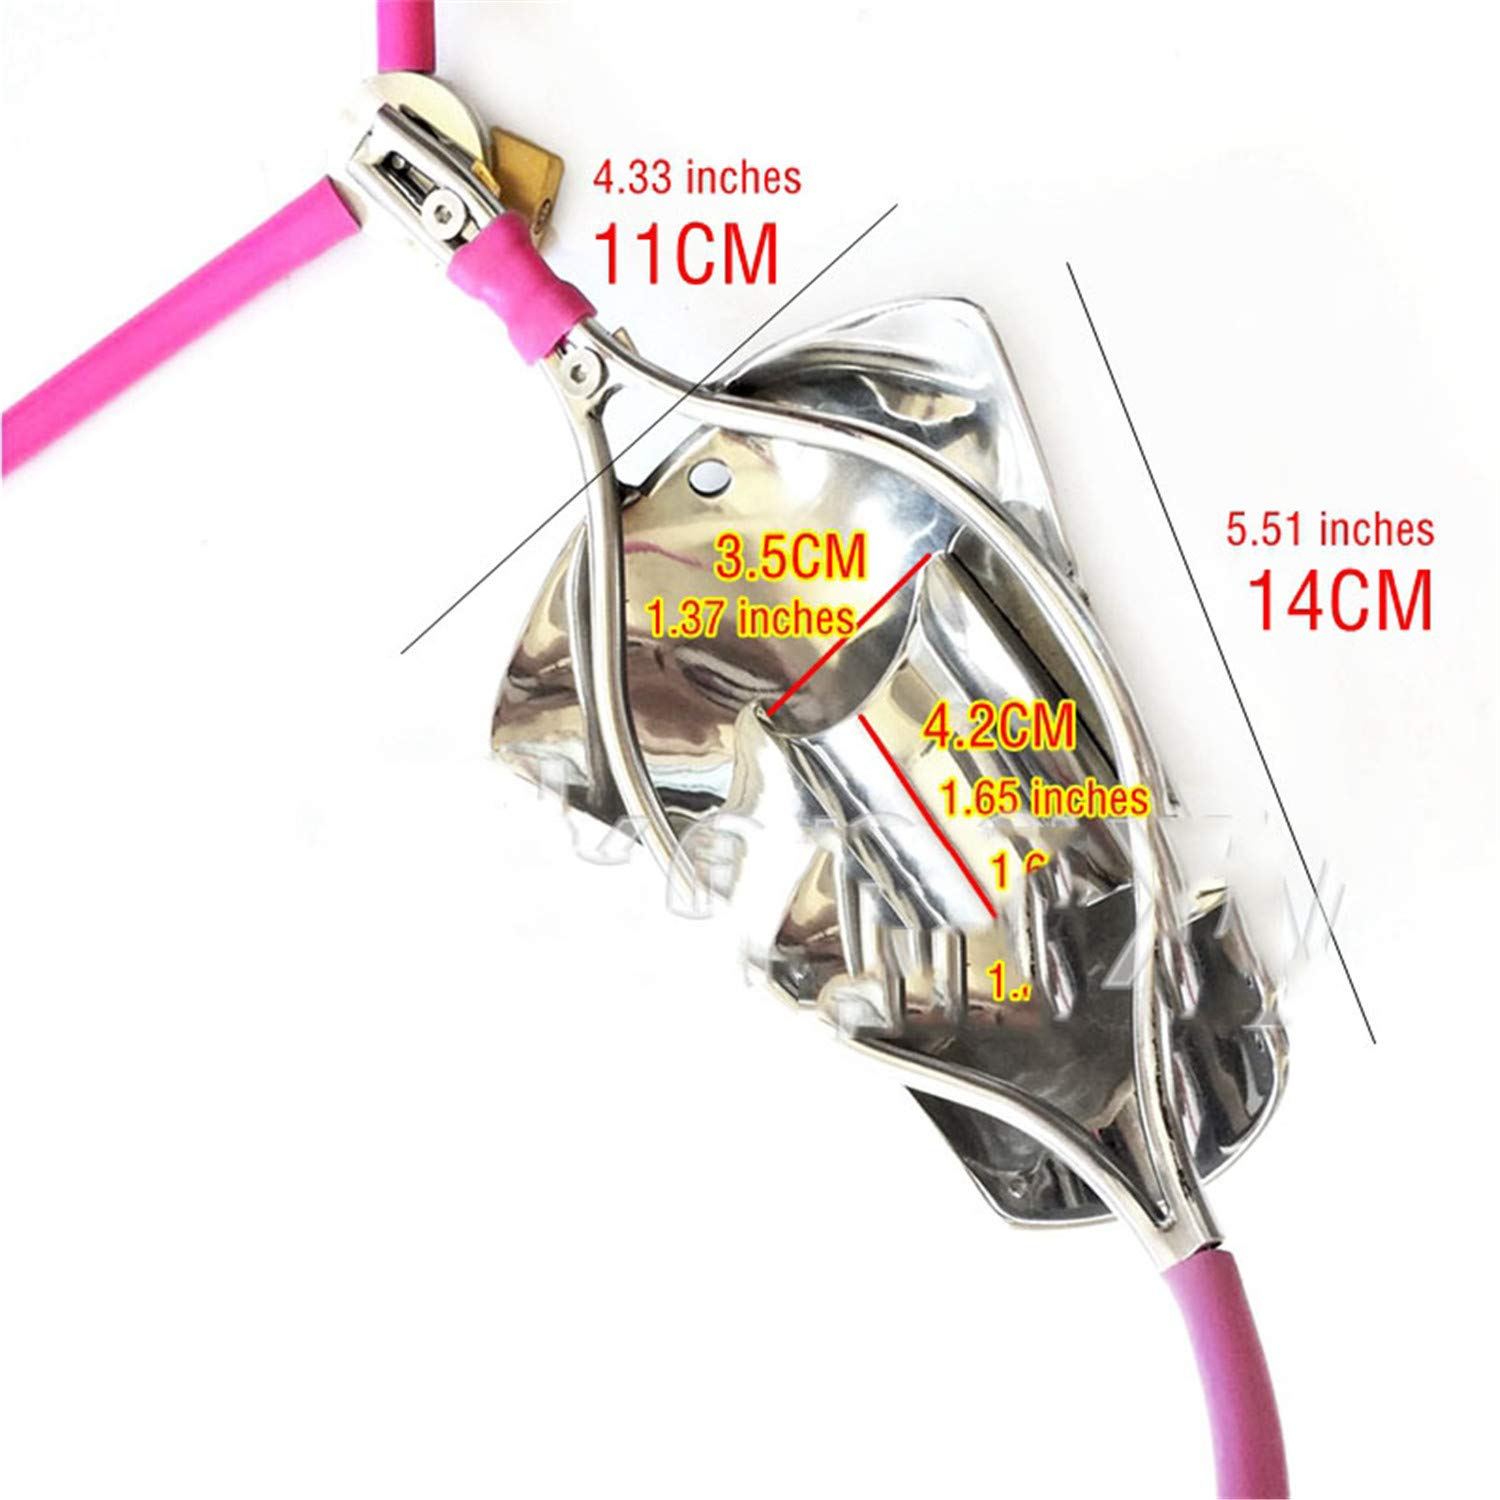 Cathet-er Sound Fully Adjustable Chastity Jeff Tribble Belt Stealth Male Stainless Steel Lock Cage Chastity Cages Adult Game Restraint Device by Jeff Tribble (Image #6)